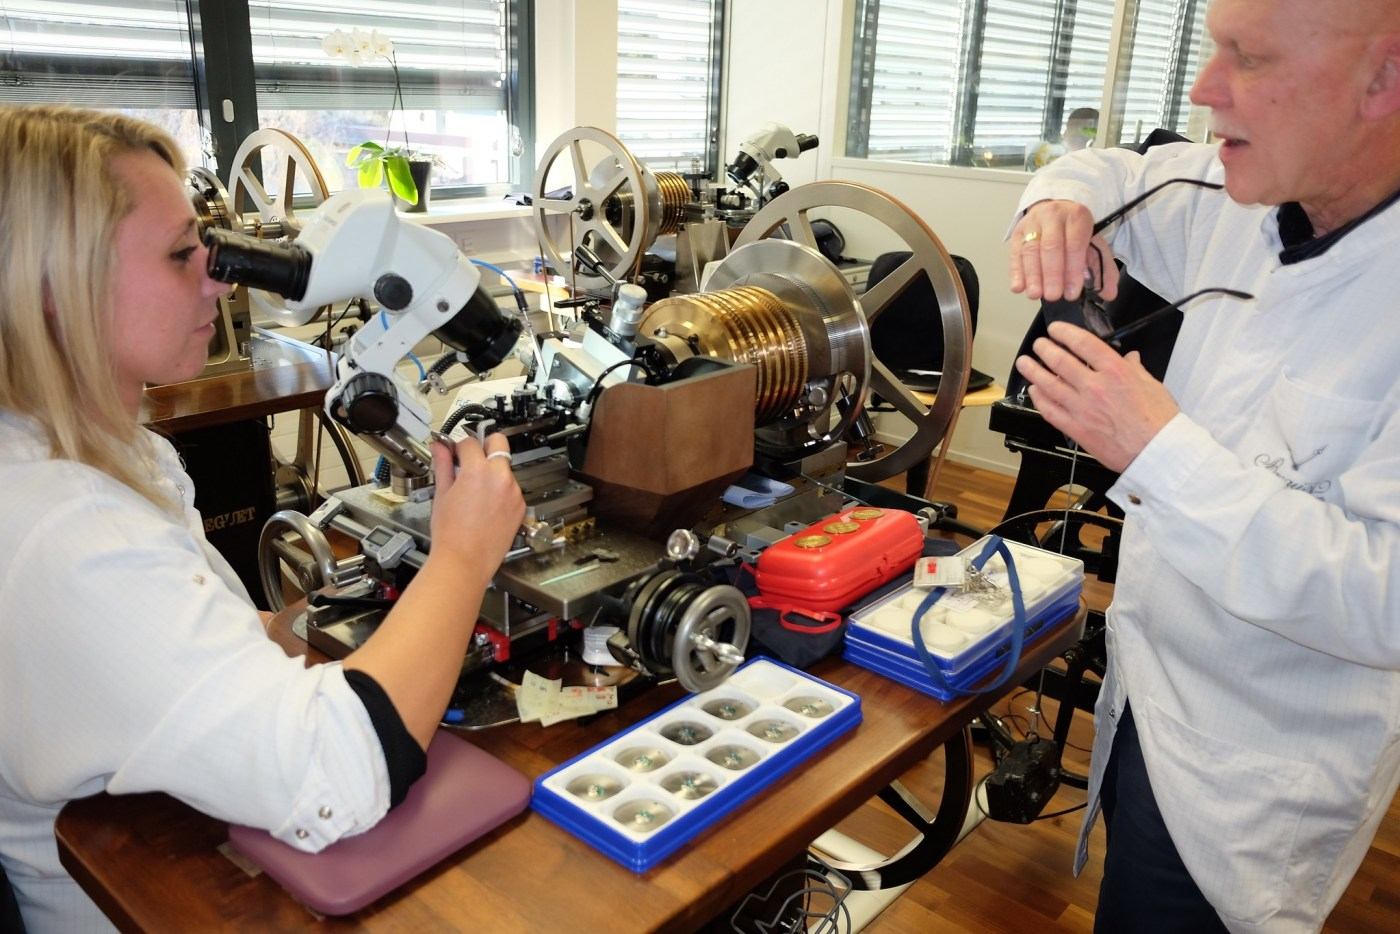 Looking on as a master engraver performs guilloche-work on a vintage rose engine